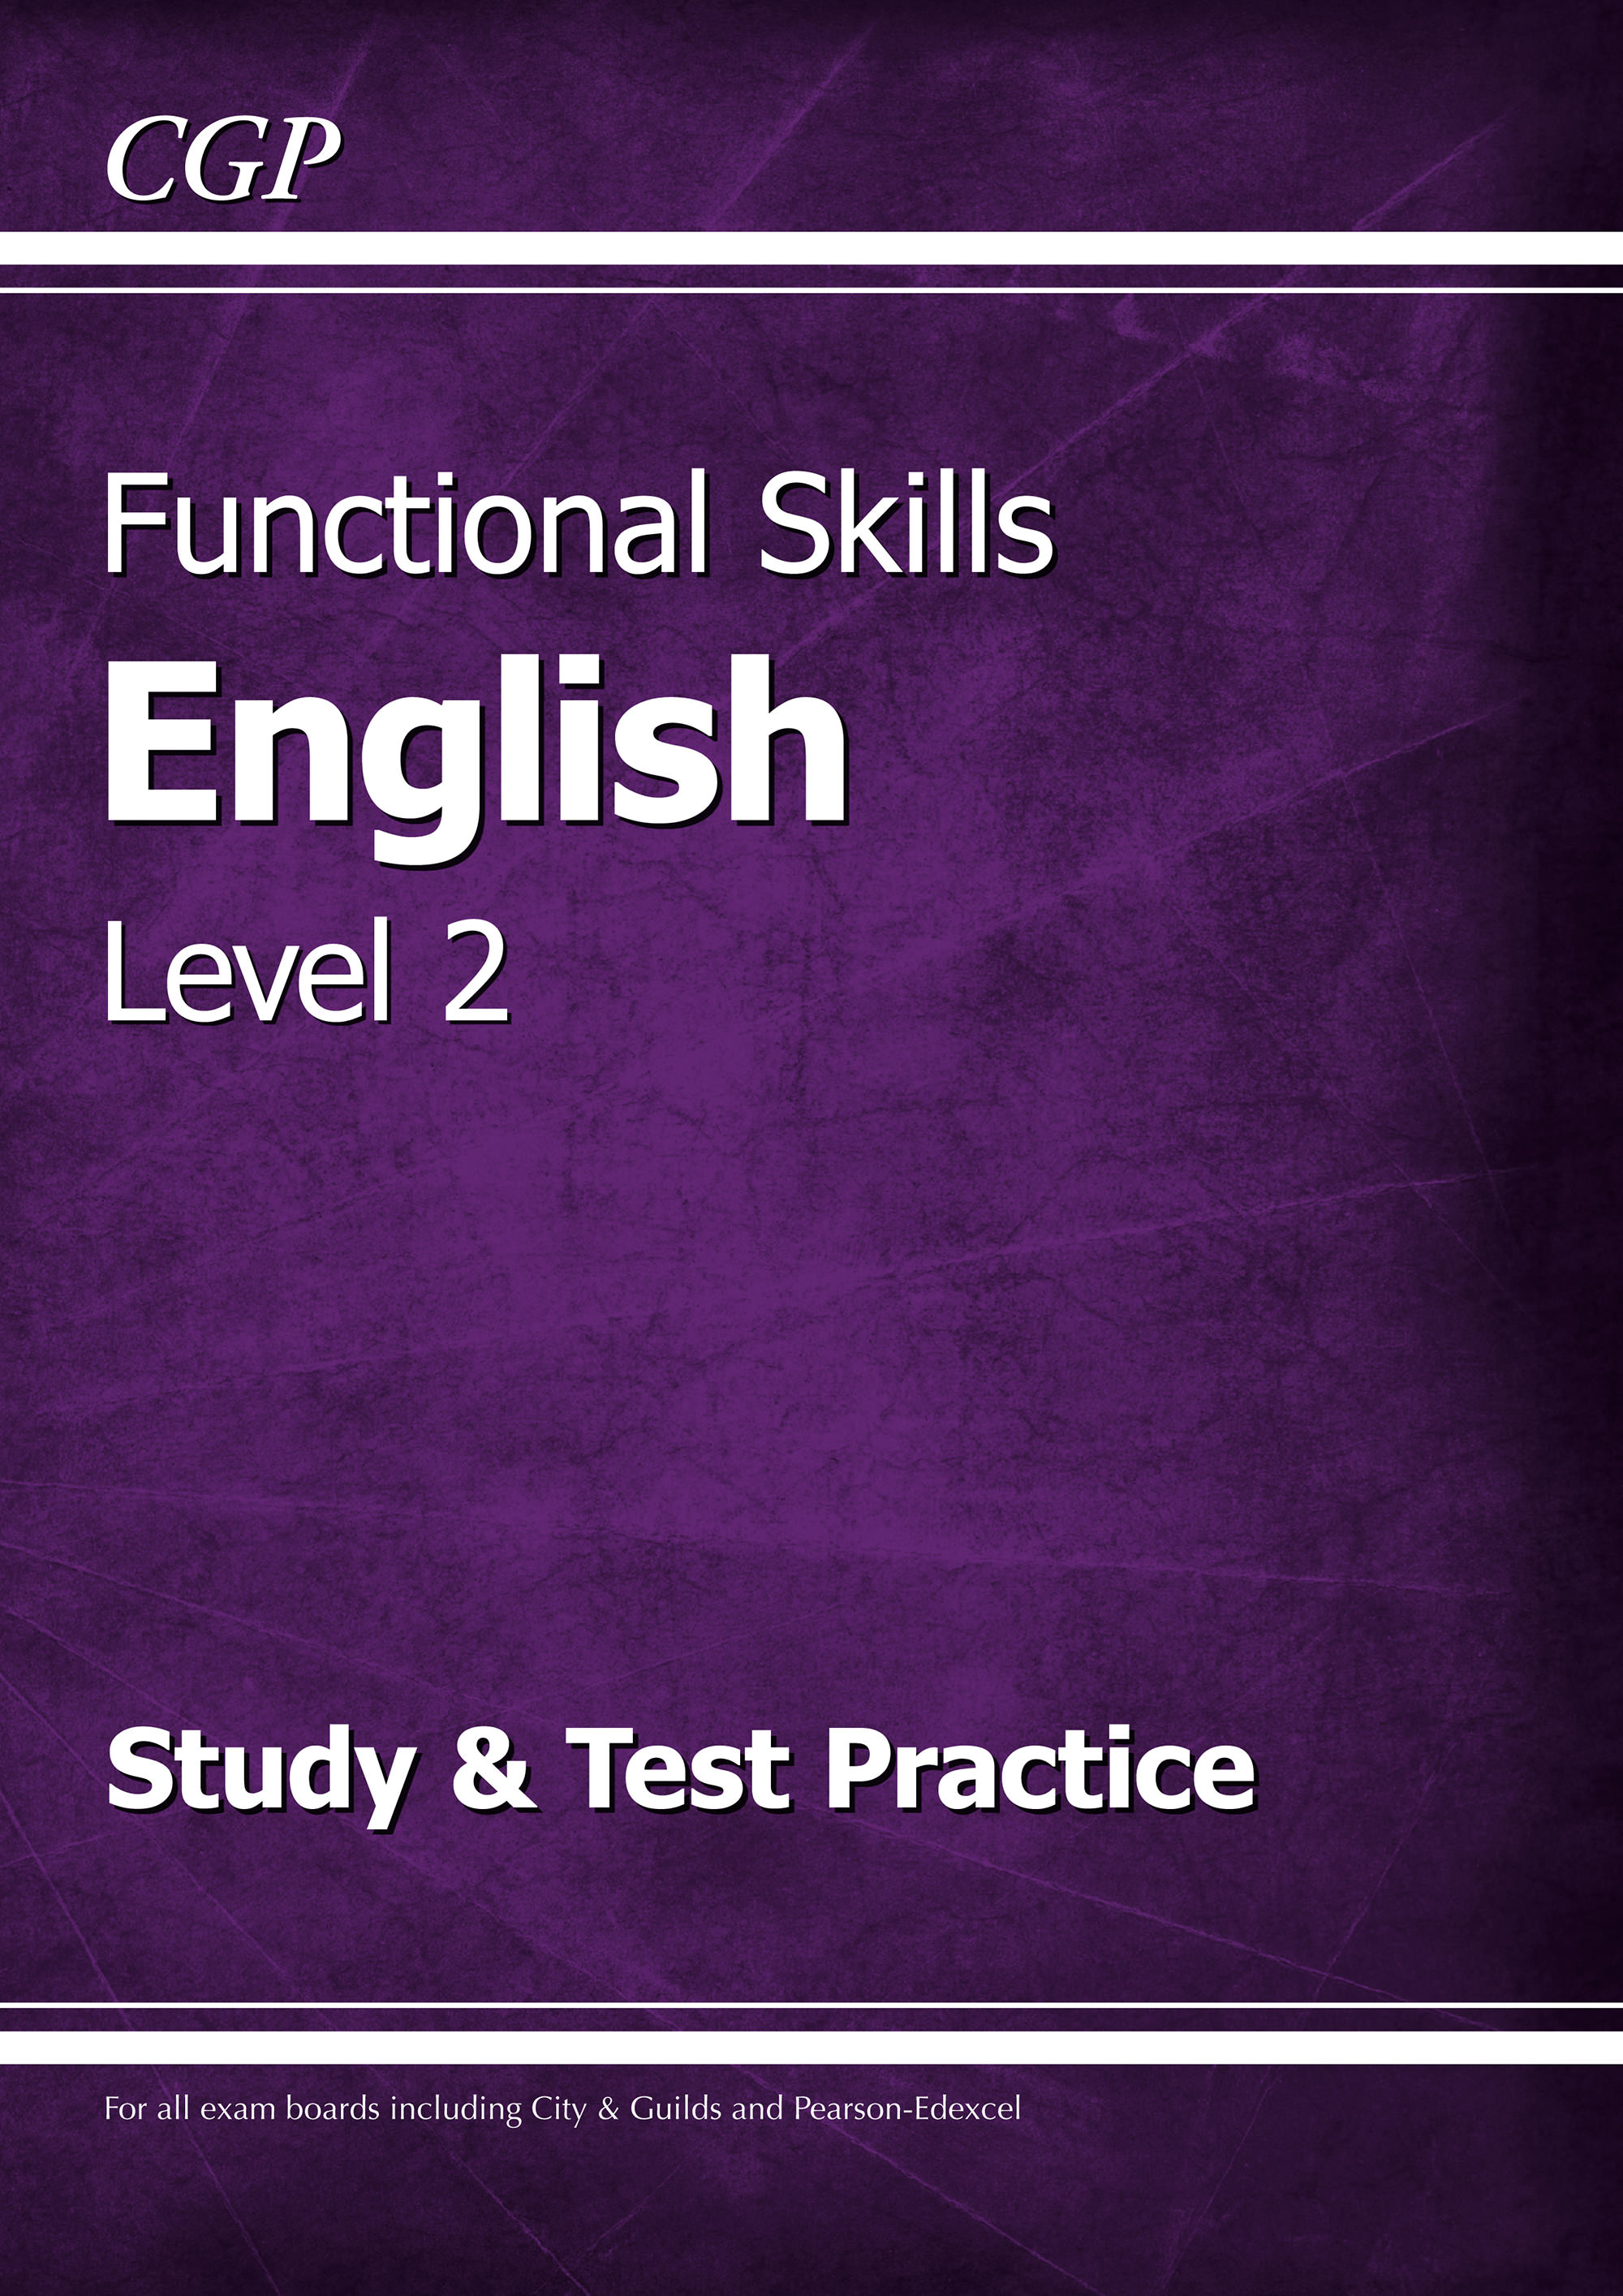 E2SRA2 - Functional Skills English Level 2 - Study & Test Practice